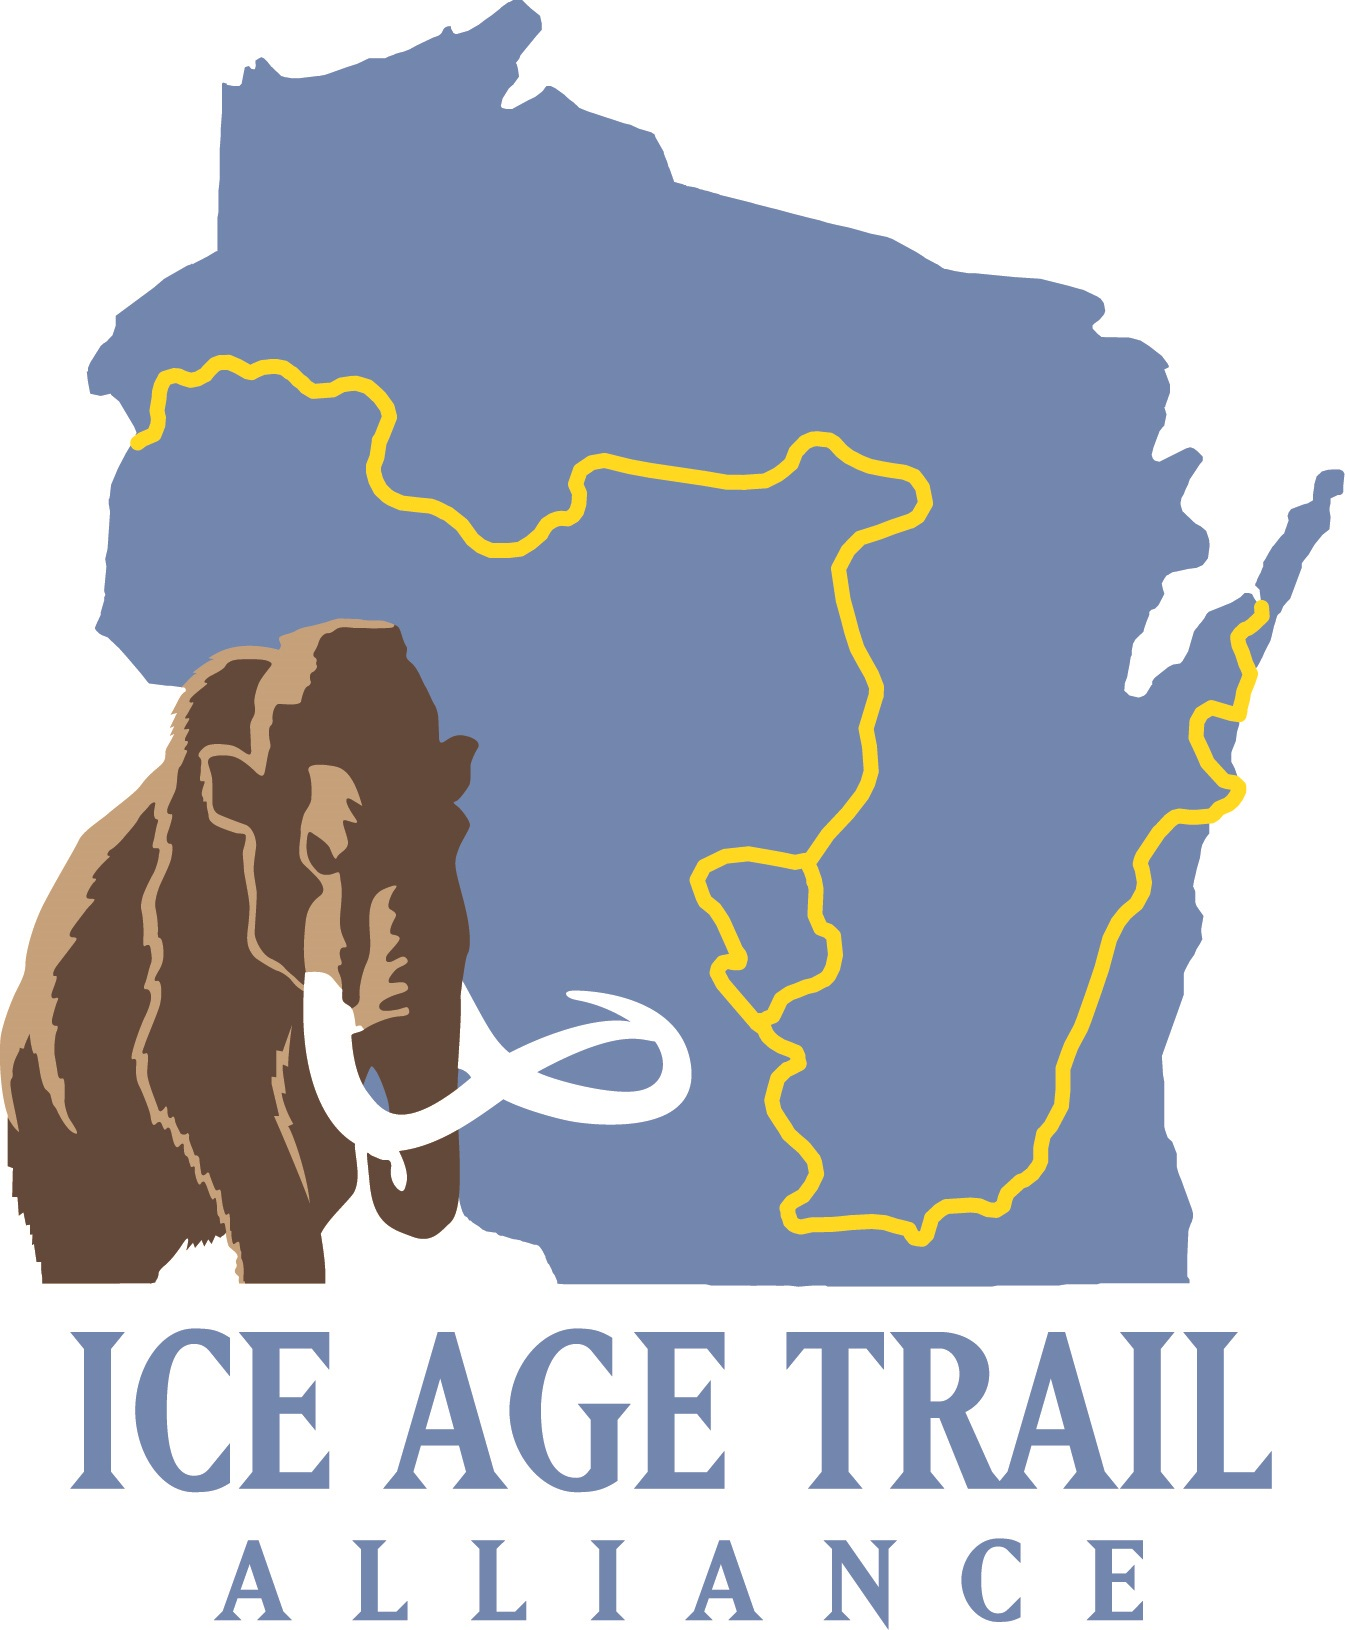 Ice Age Trail Alliance (1).jpg